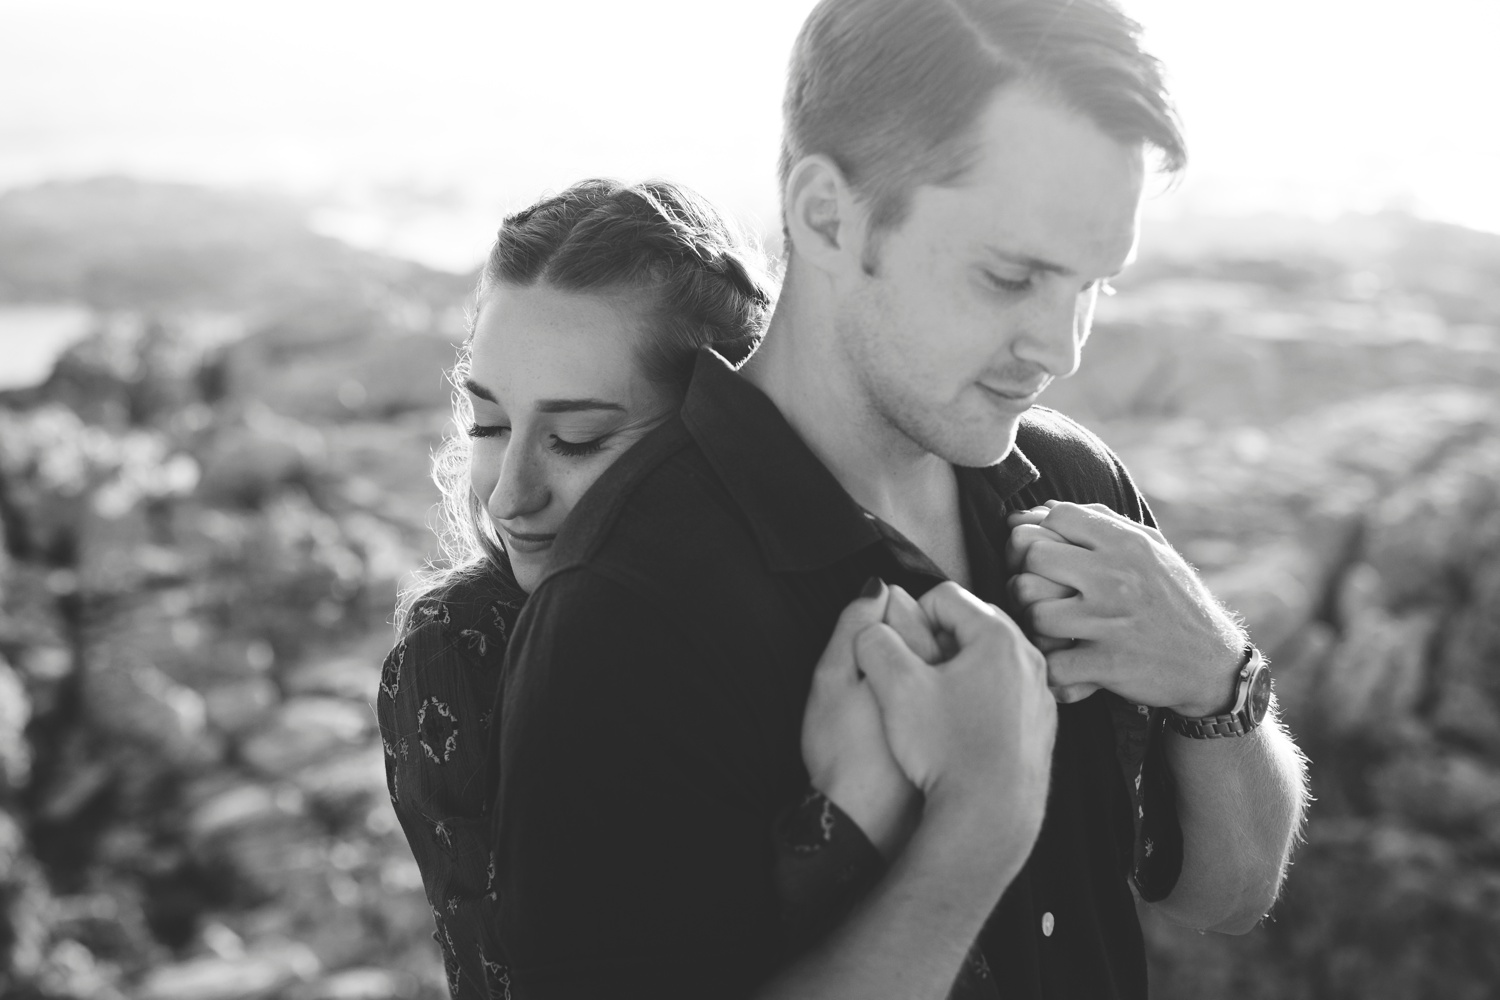 Marie&Andre-CharlieRay-st-francis-cape-ocean-wild-side-couple_0525.jpg